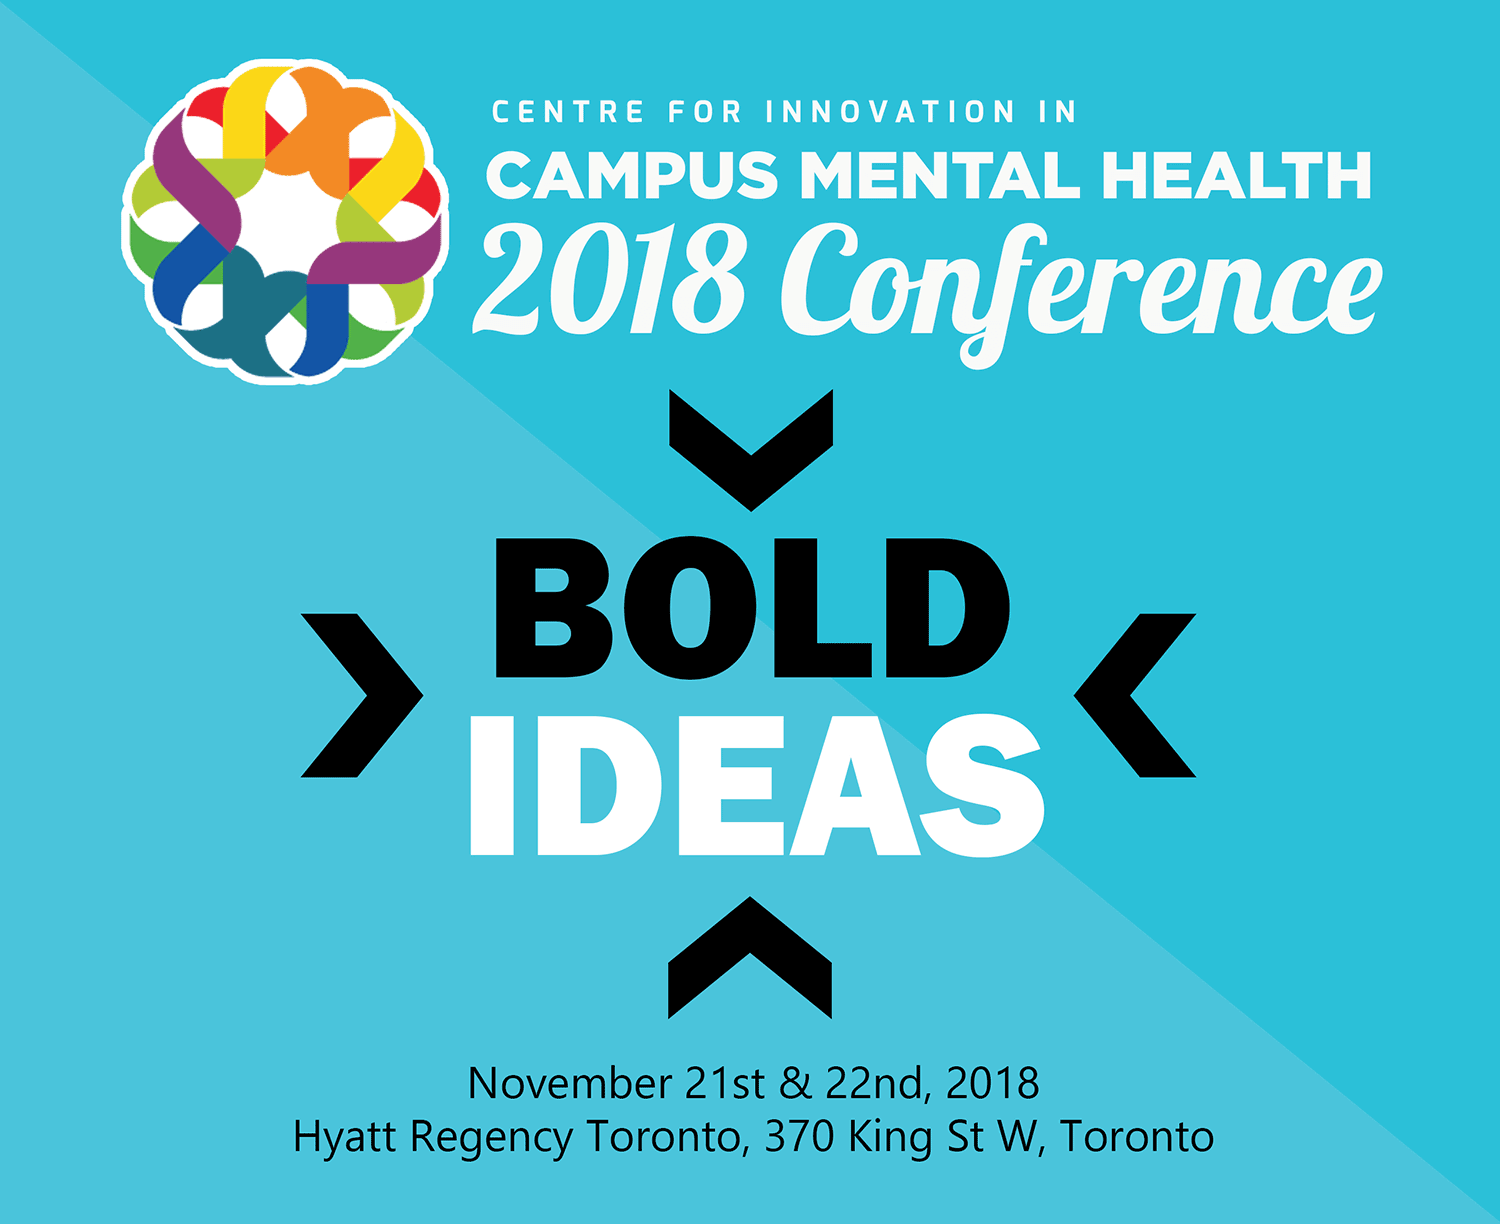 2018 Conference | Bold Ideas - Centre for Innovation in Campus